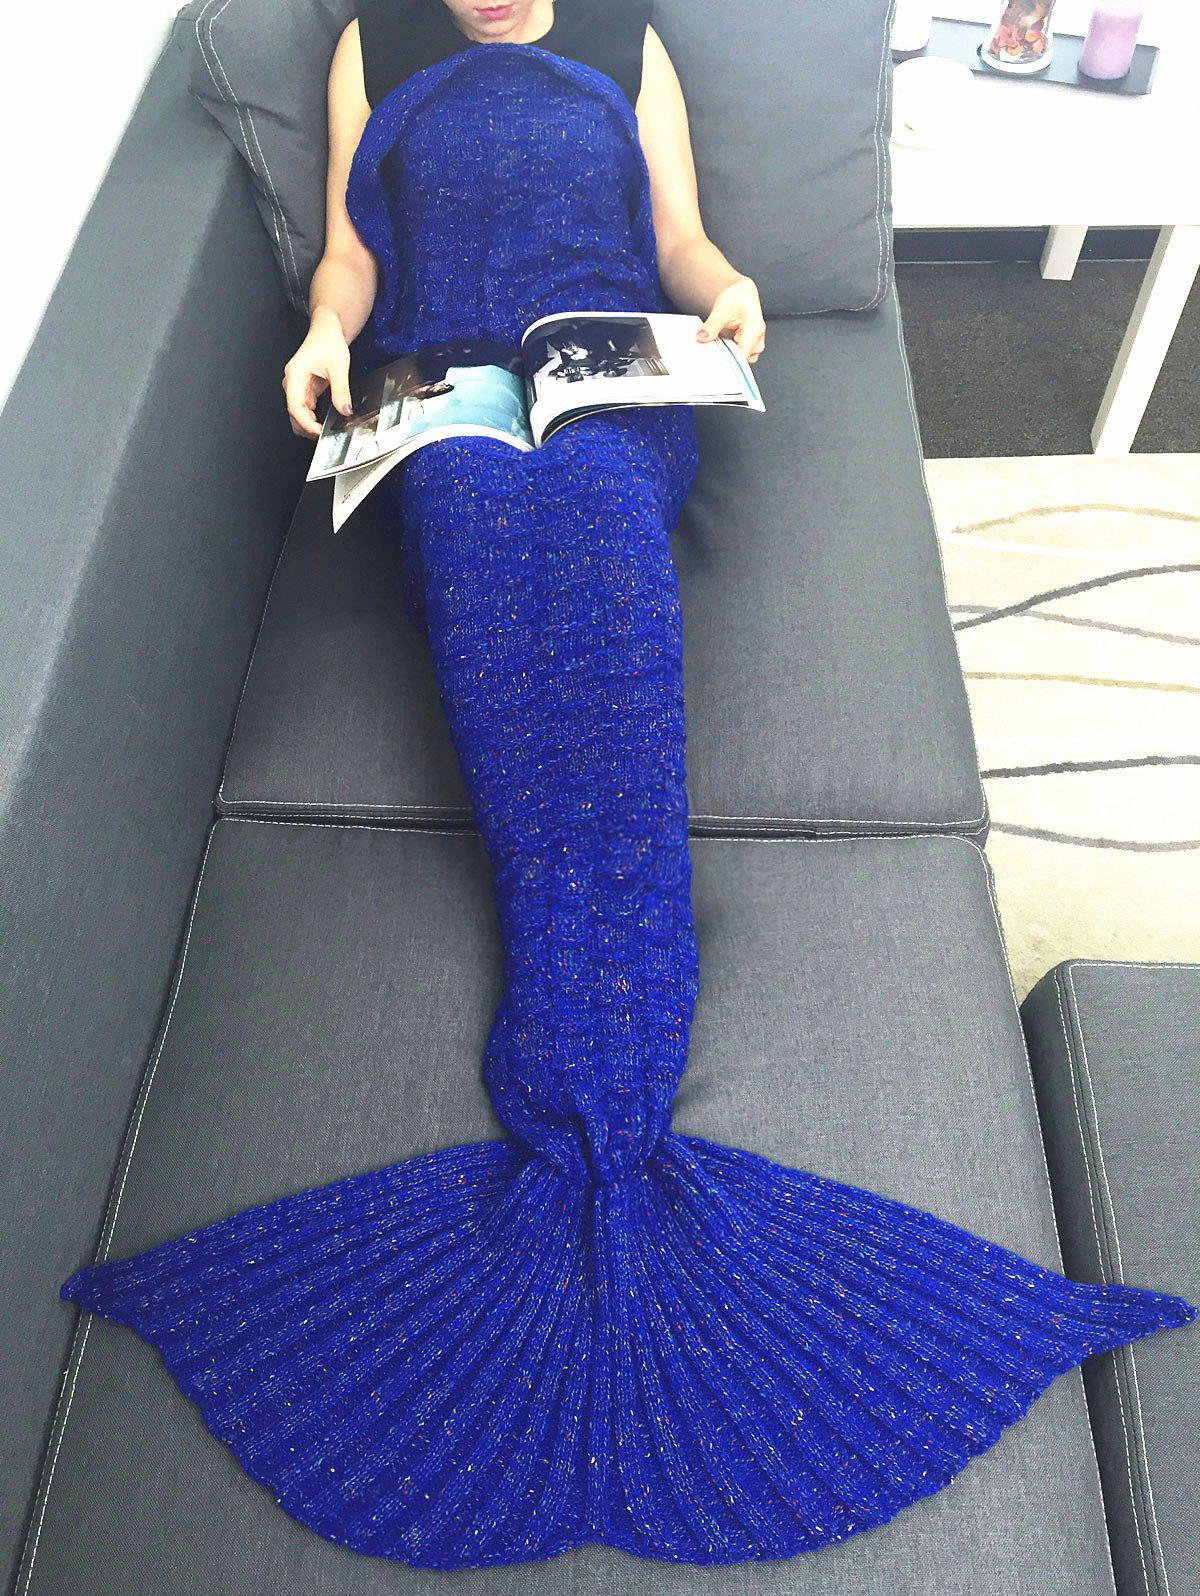 Comfortable Acrylic Knitting Mermaid Tail Sofa Blanket lacy knitting comfortable checkered hollowed blanket for kids